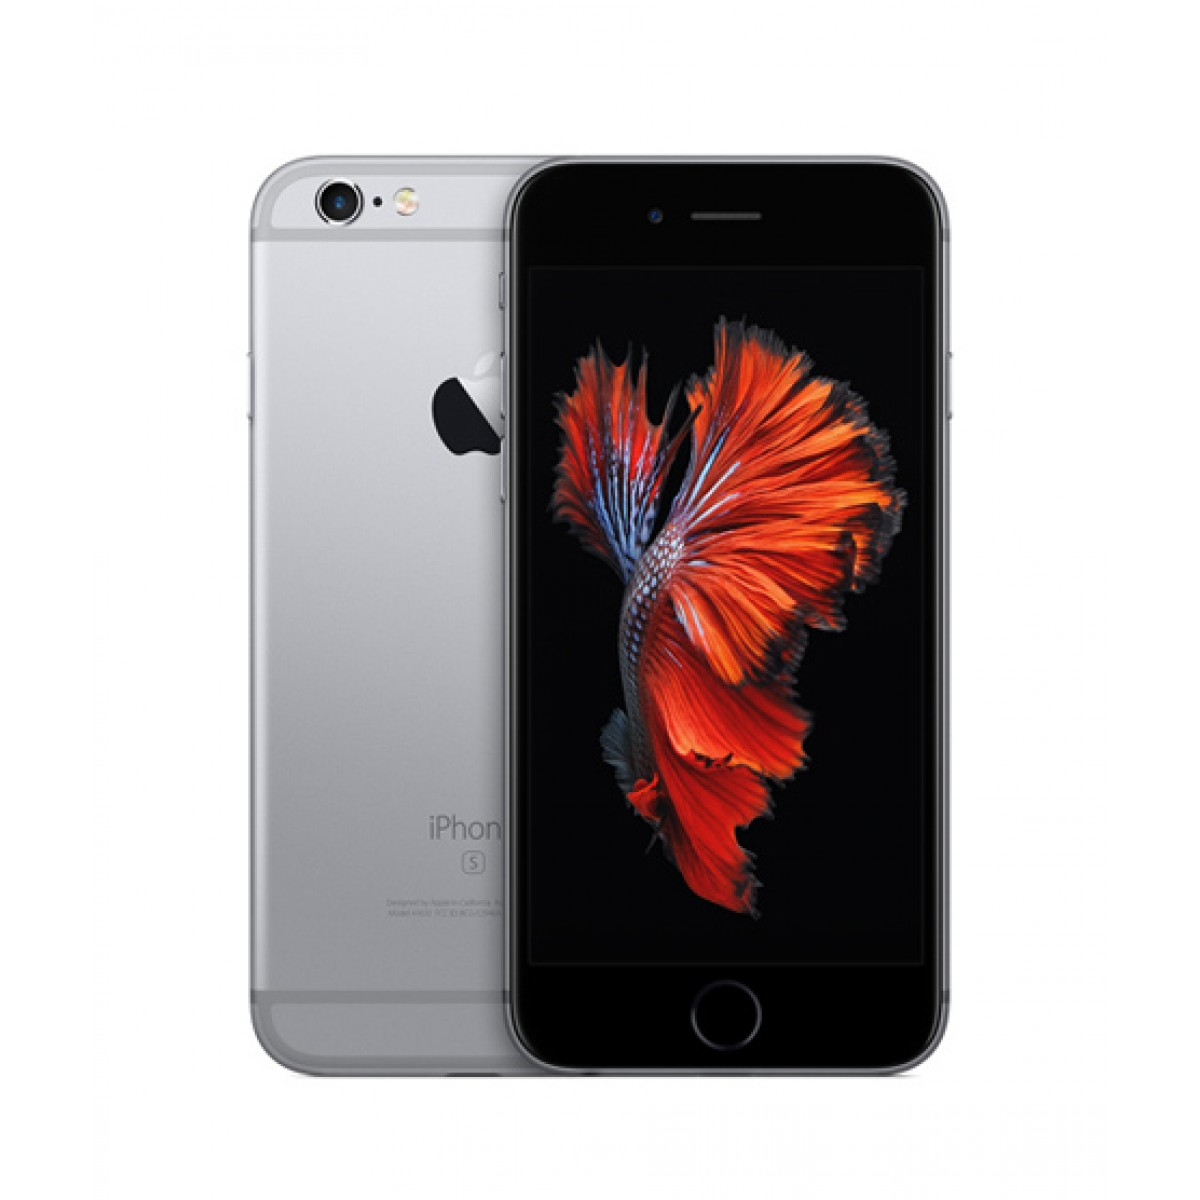 Apple Iphone 6s Price In Pakistan Buy Apple Iphone 128gb Space Grey Ishopping Pk